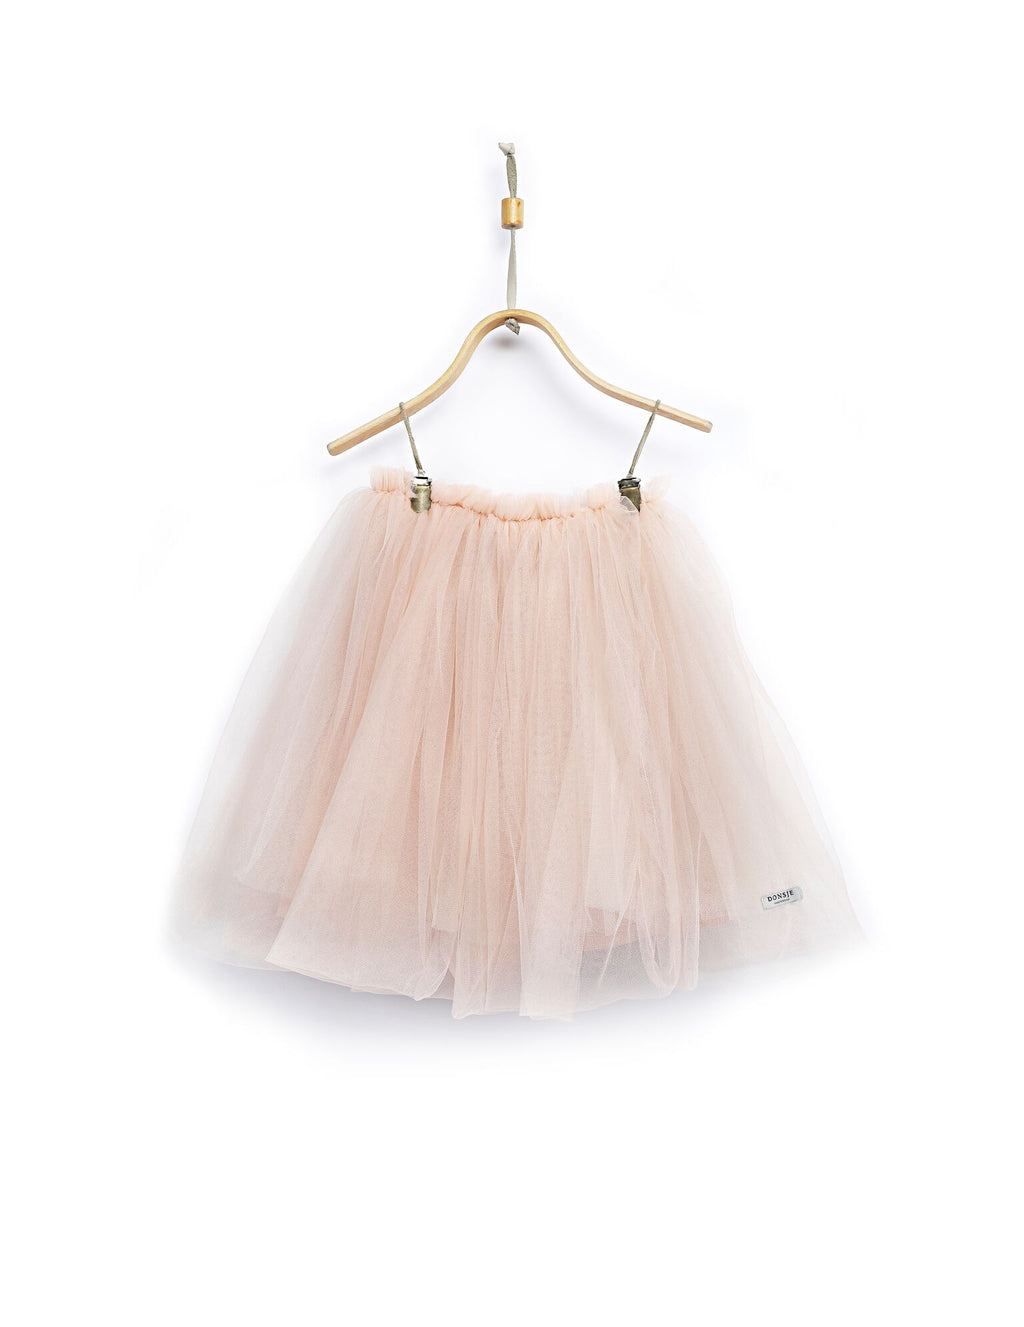 Donsje - Fay Skirt Powder Metallic 2-3Y